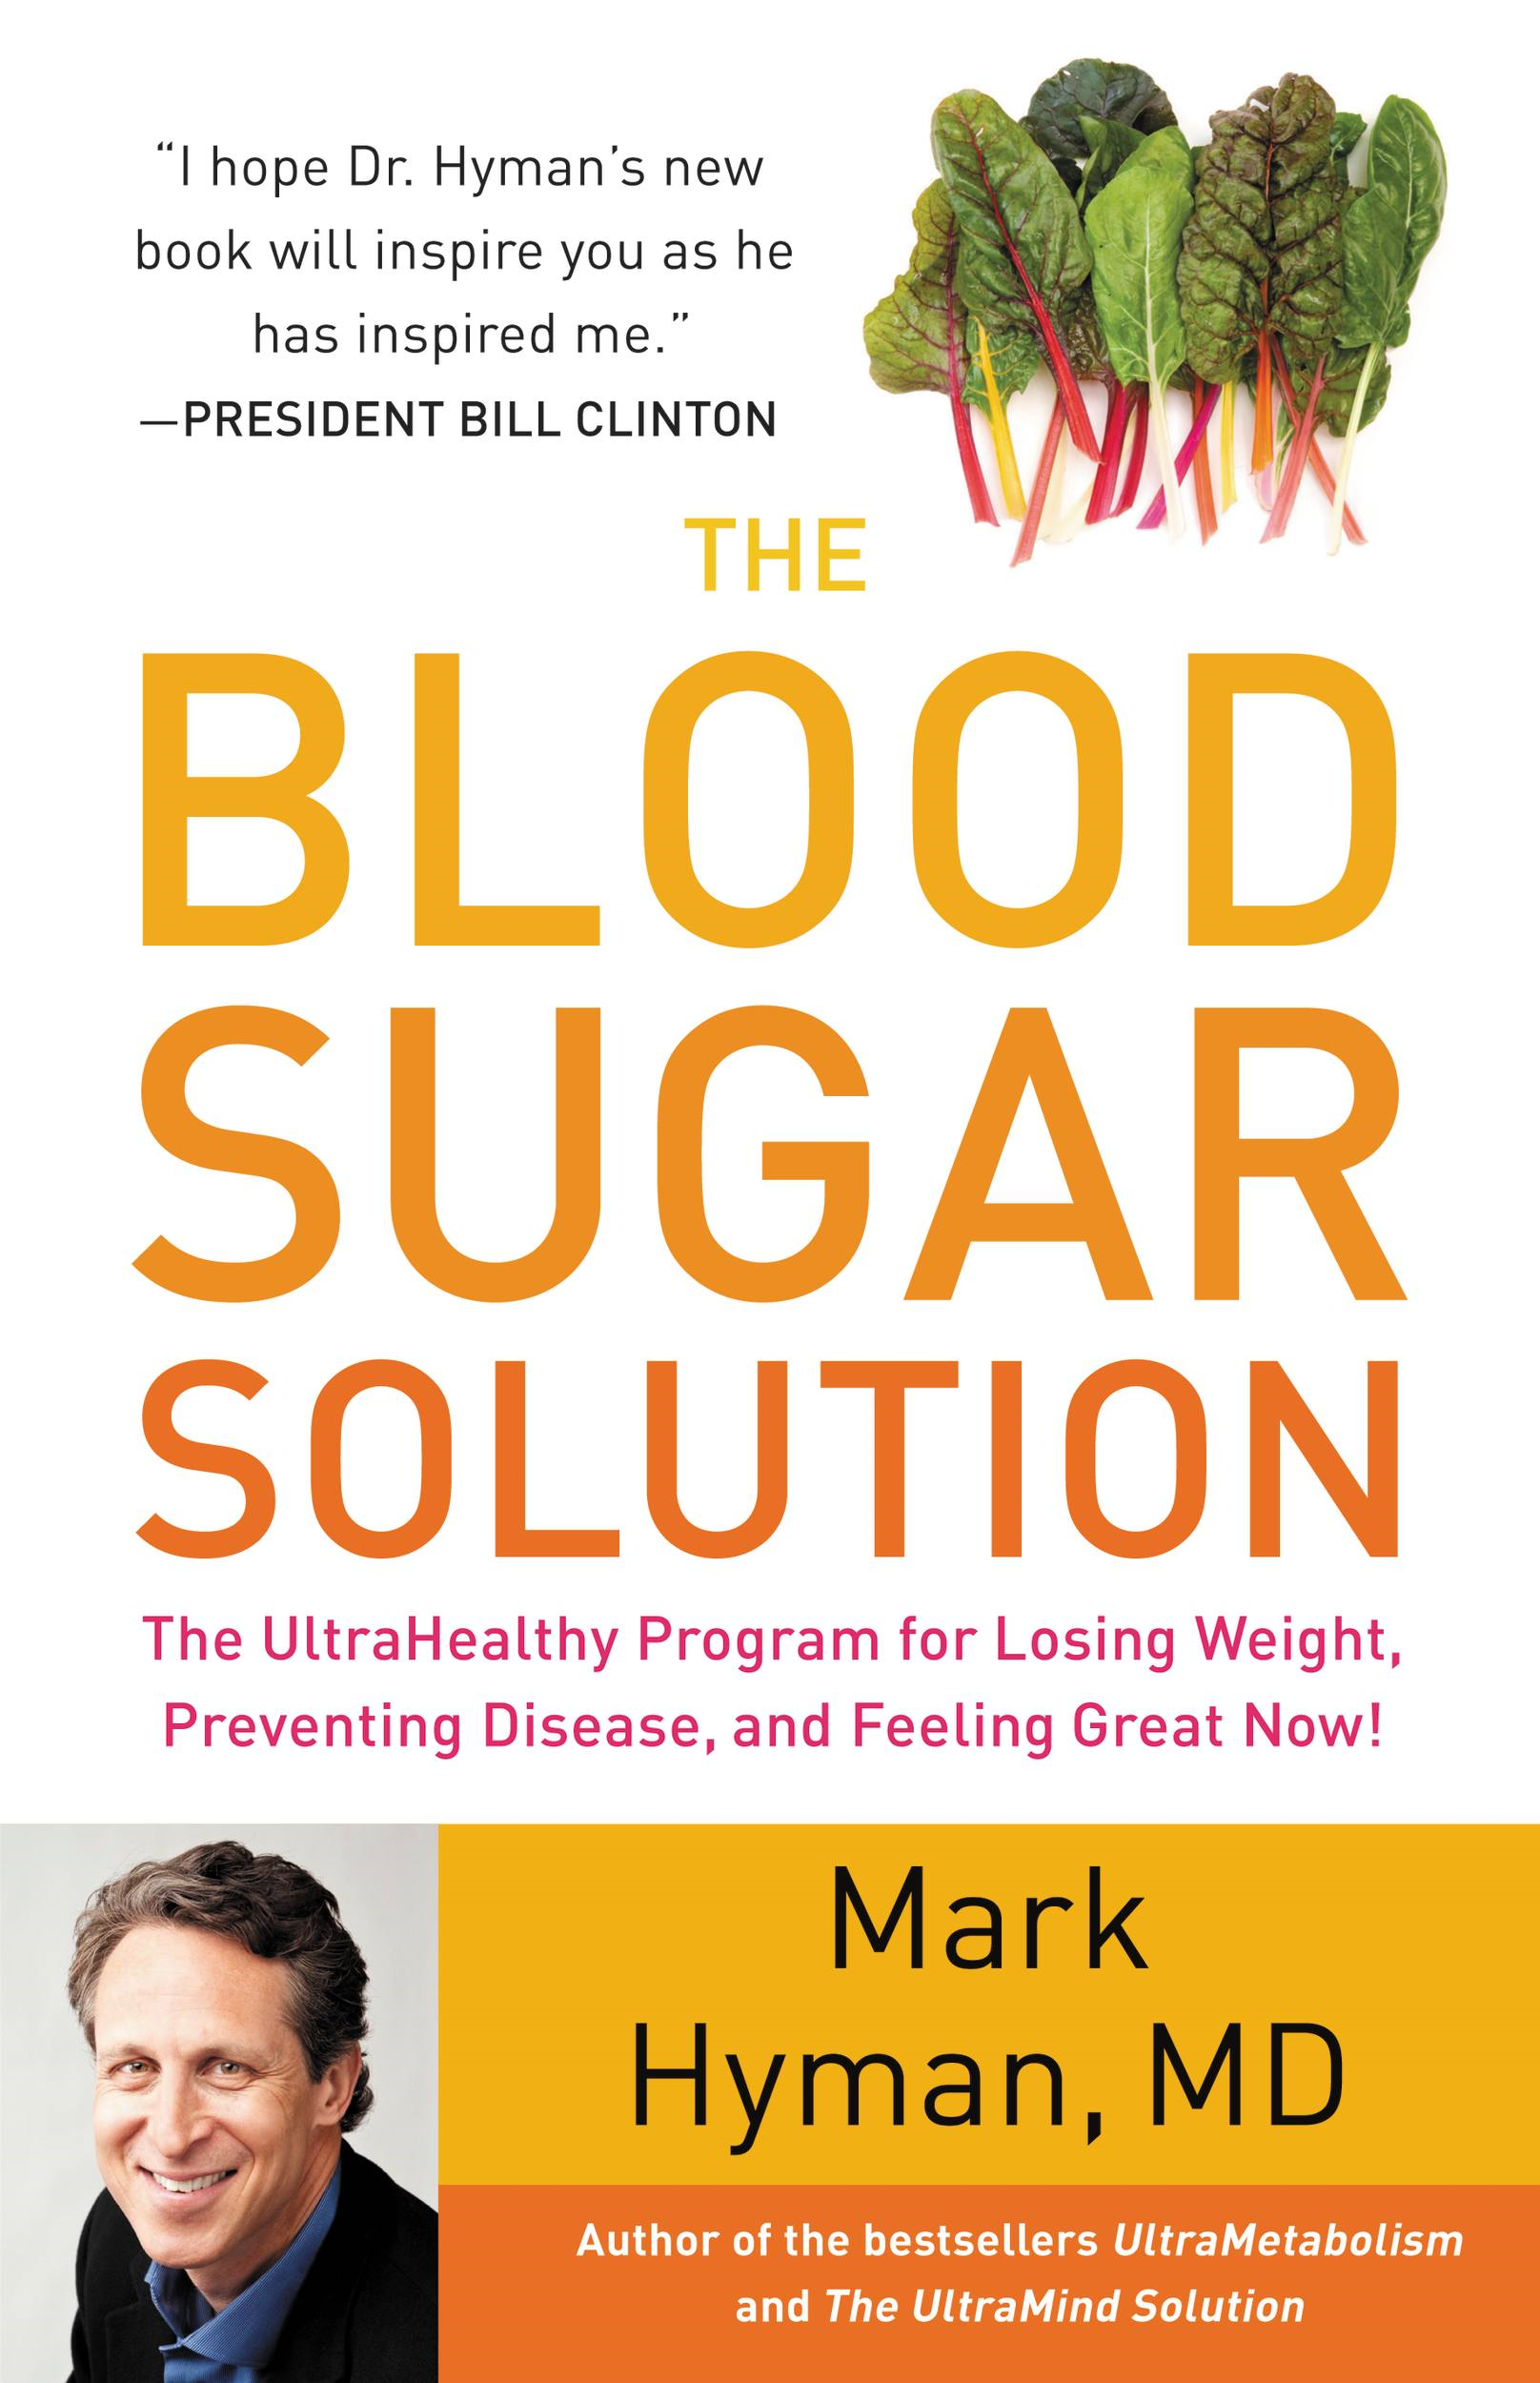 The Blood Sugar Solution: The UltraHealthy Program for Losing Weight, Preventing Disease, and Feeling Great Now! By: Mark Hyman